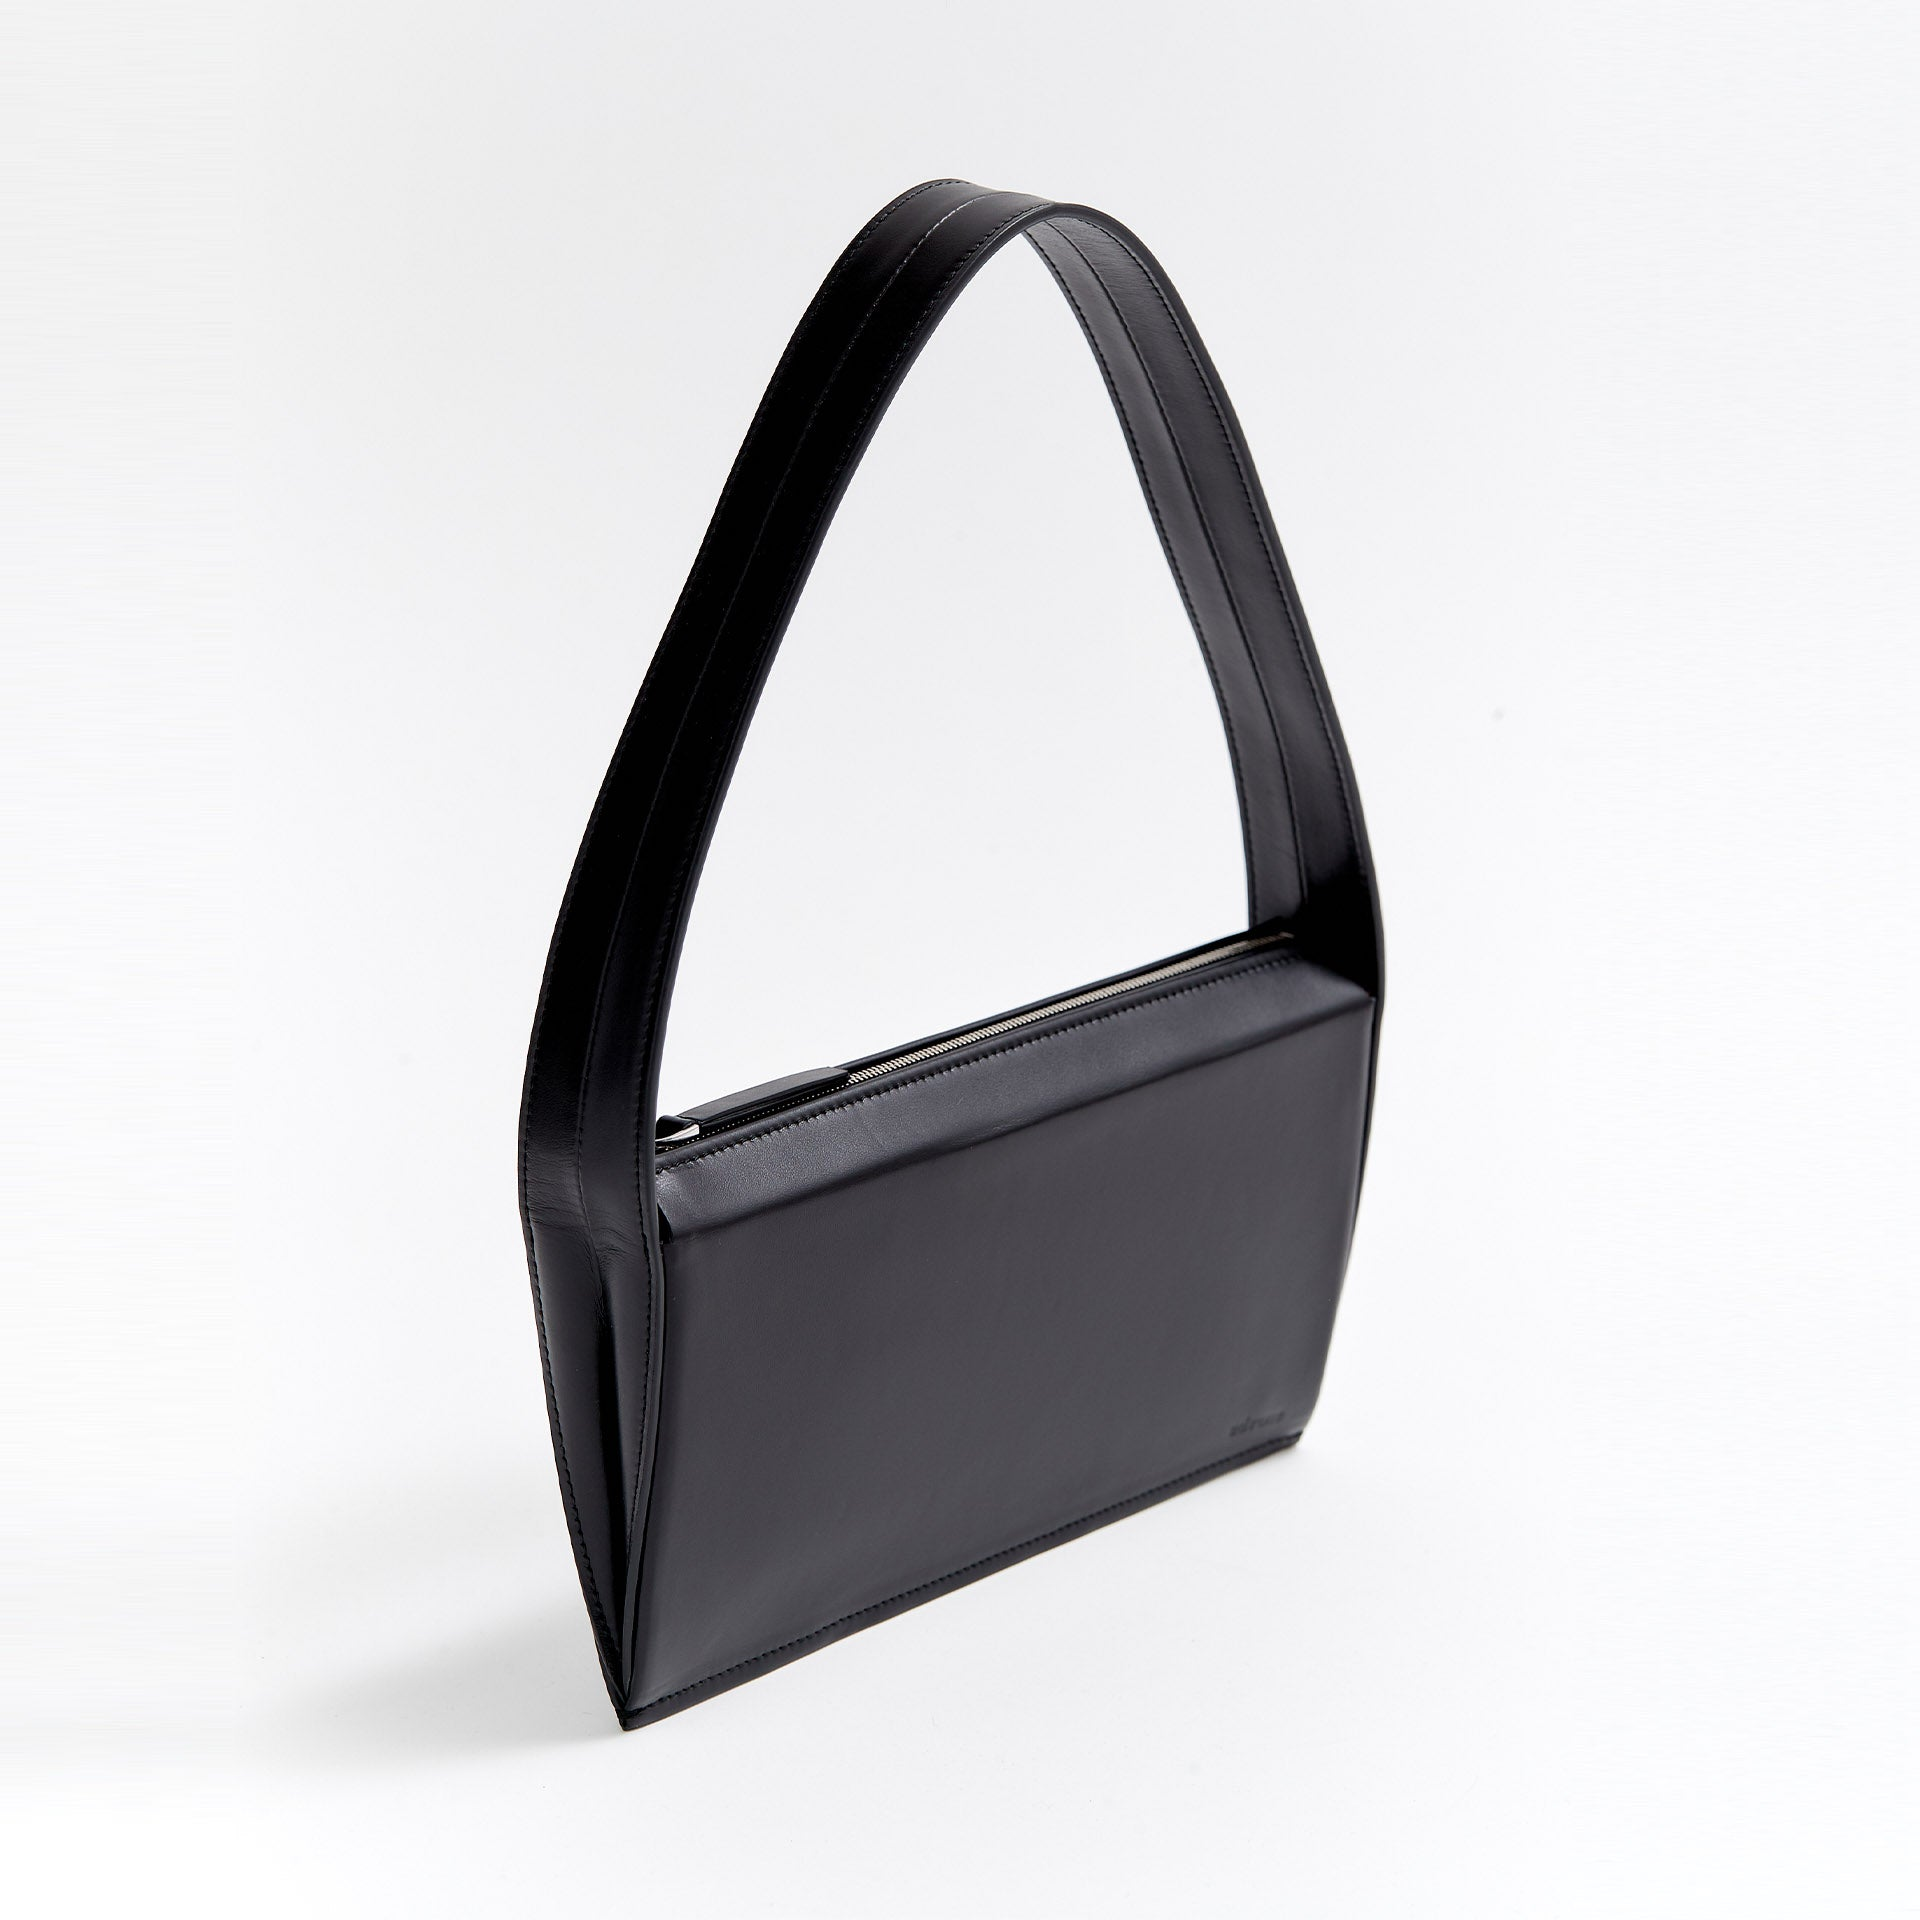 THE EDGE BAG | BLACK by Advene, available on advenedesign.com for $395 Kendall Jenner Bags Exact Product